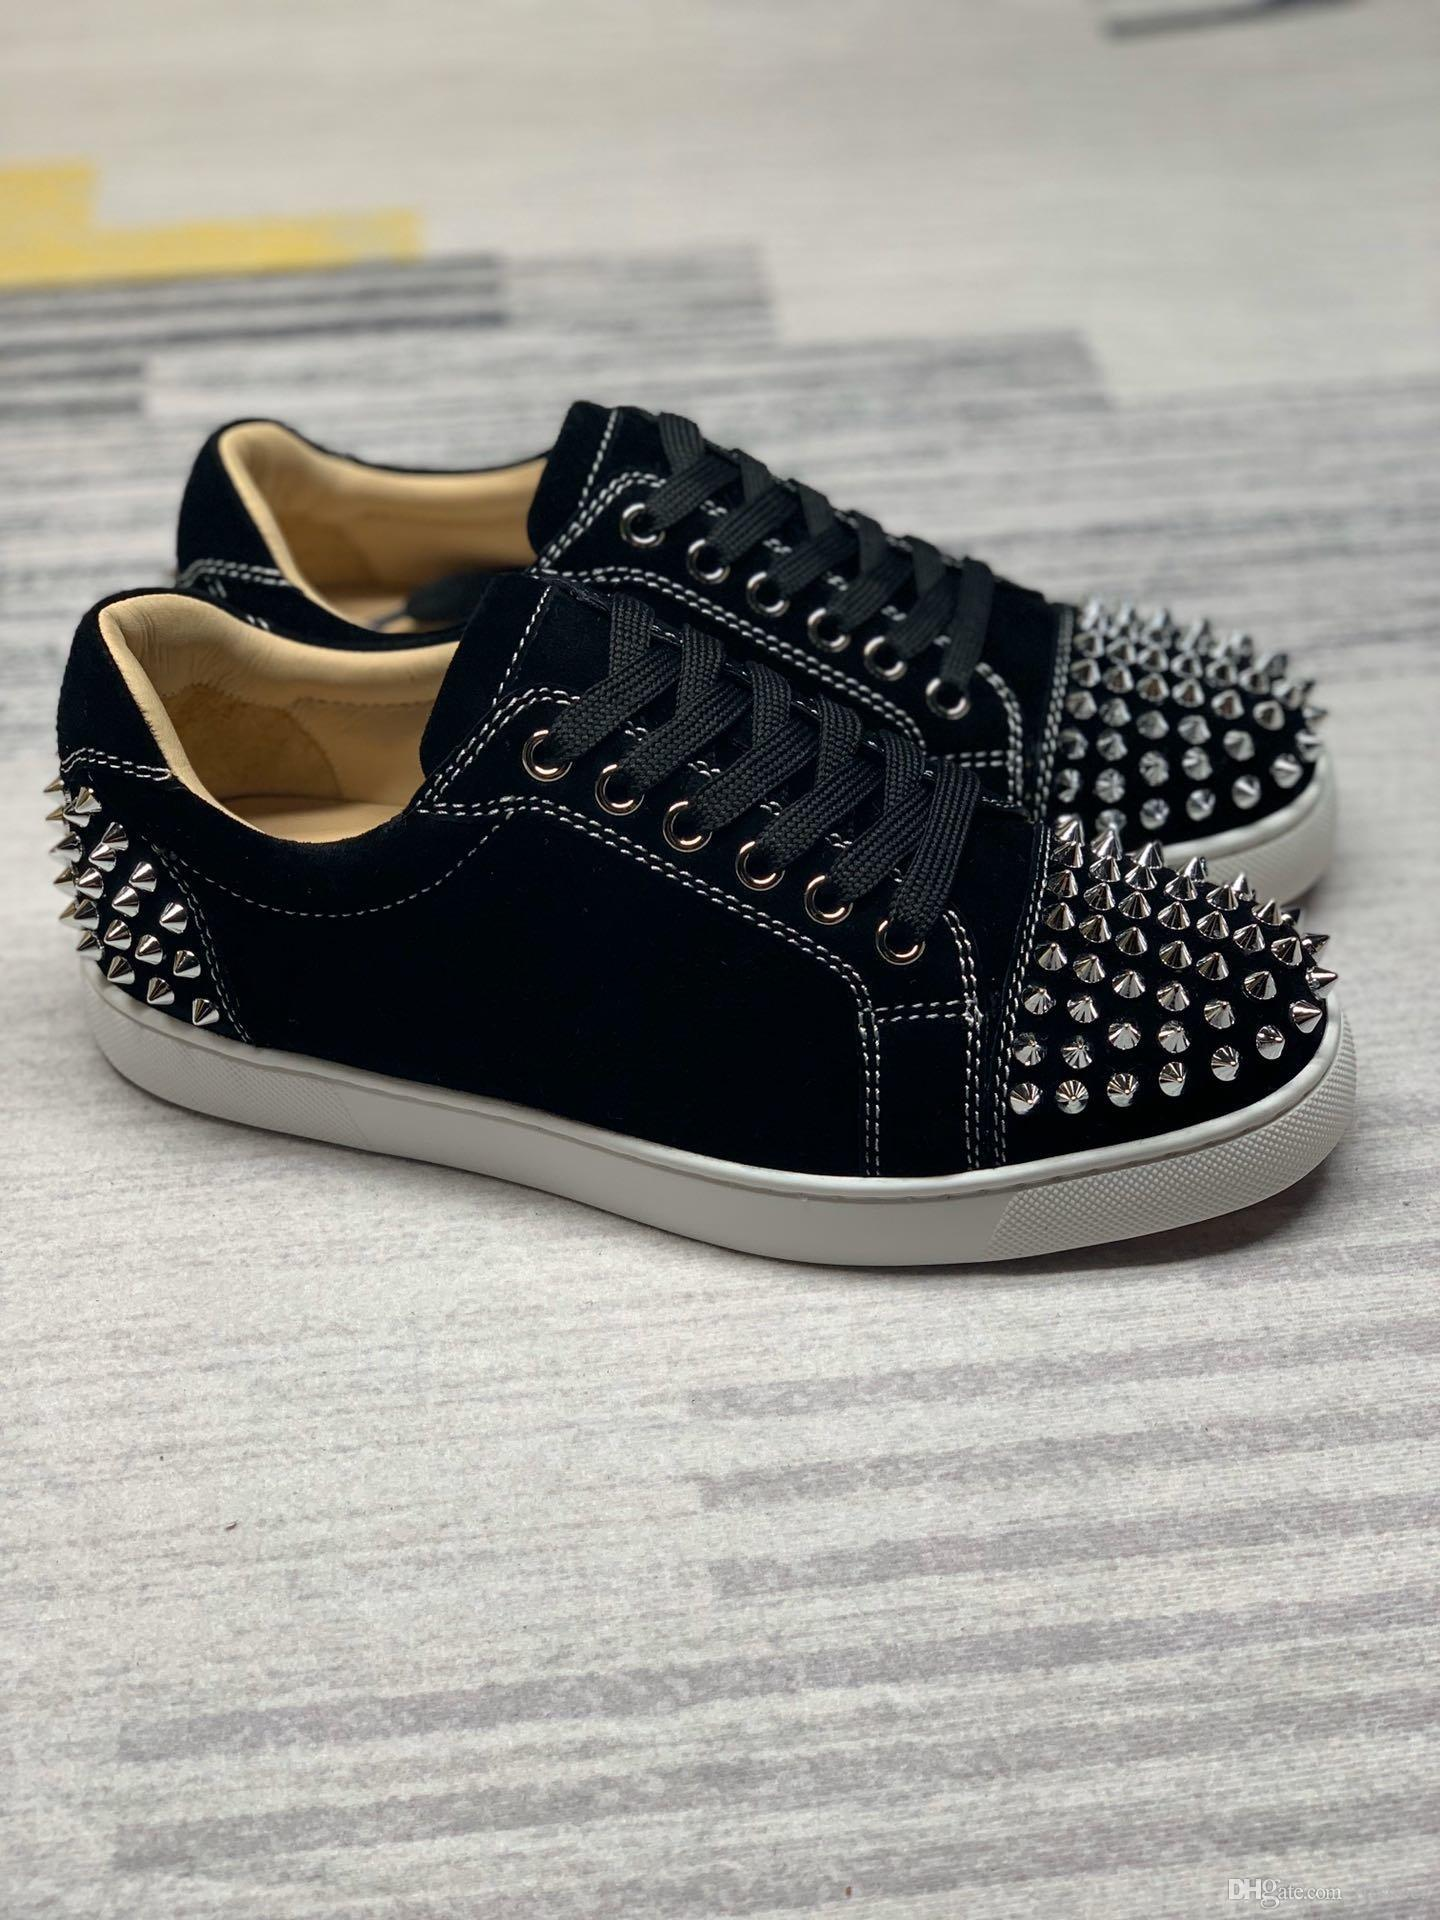 Designer shoes Low Cut Suede spike casual Shoes Party Wedding crystal Leather Sneakers dress shoes for women men for sale